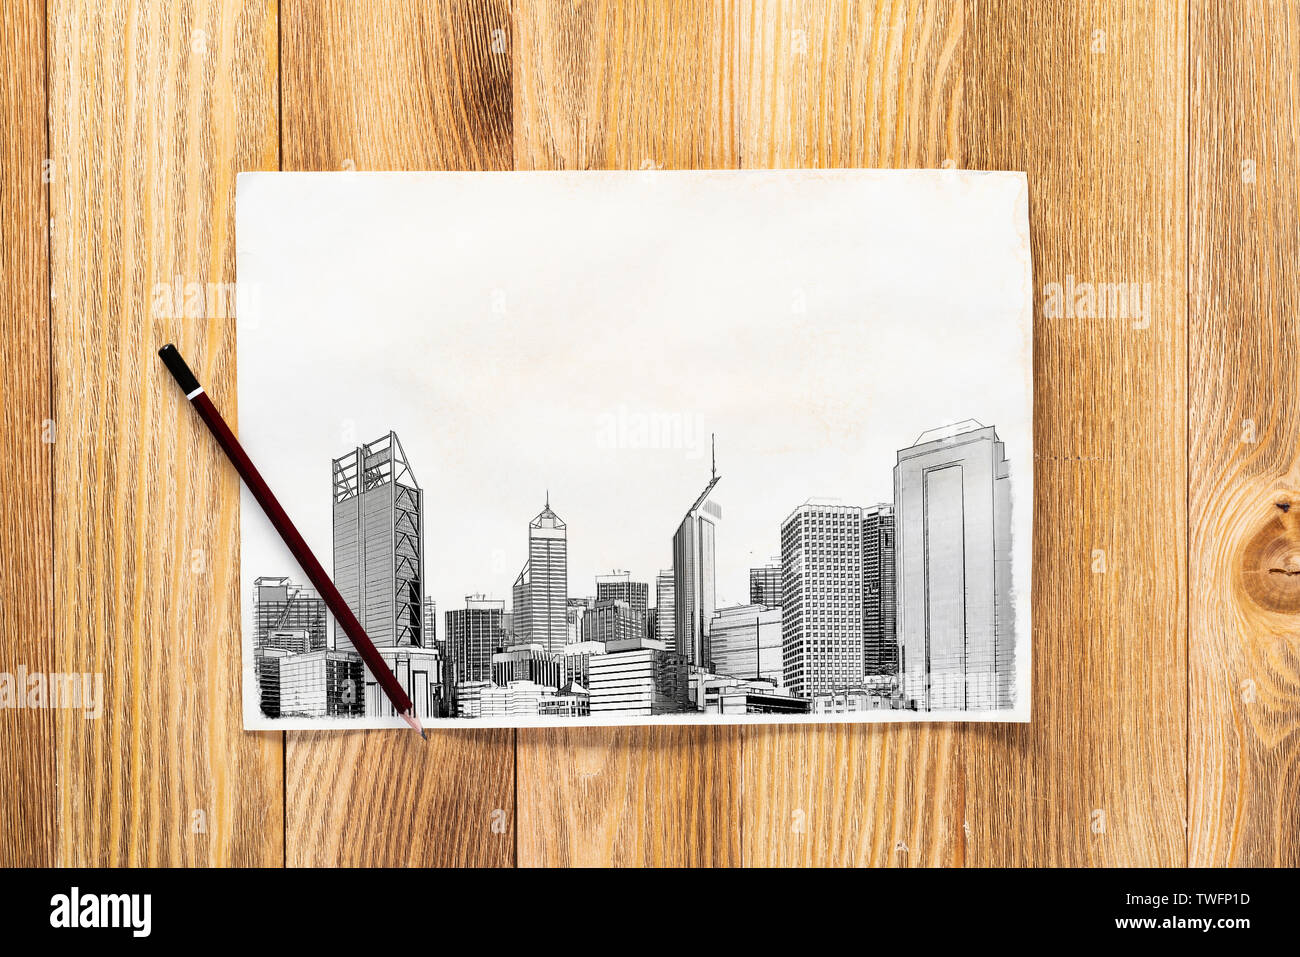 Modern city center pencil draw. Urban architecture hand drawn sketch on wooden table. Sheet of paper on textured natural wooden background. Architectu - Stock Image